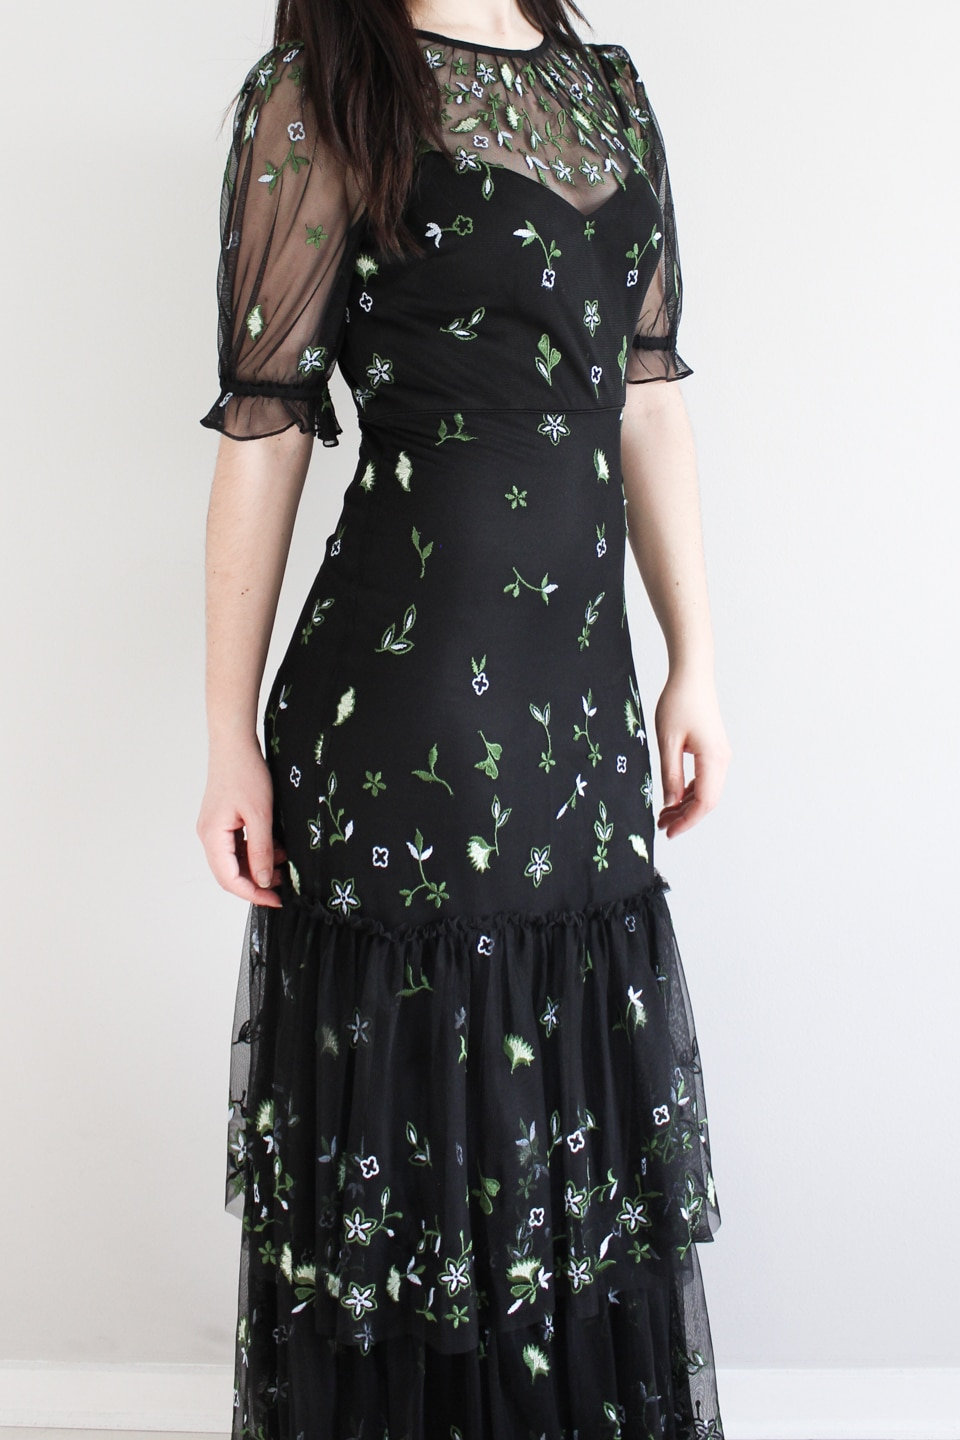 Close up of black dress with embroidered flowers